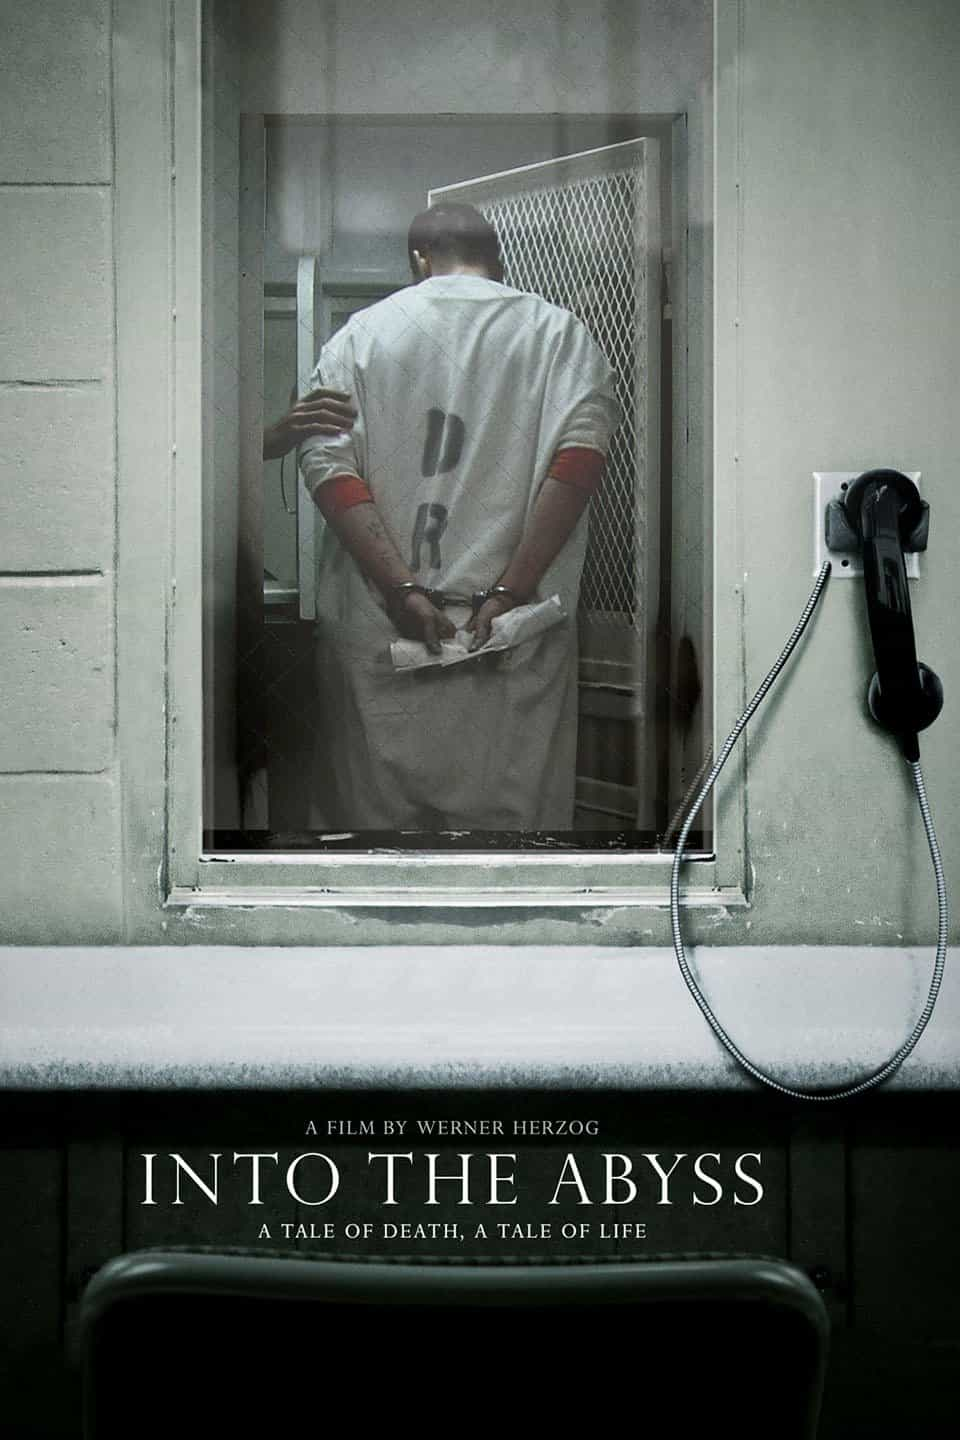 Into the Abyss: A Tale of Death a Tale of Life